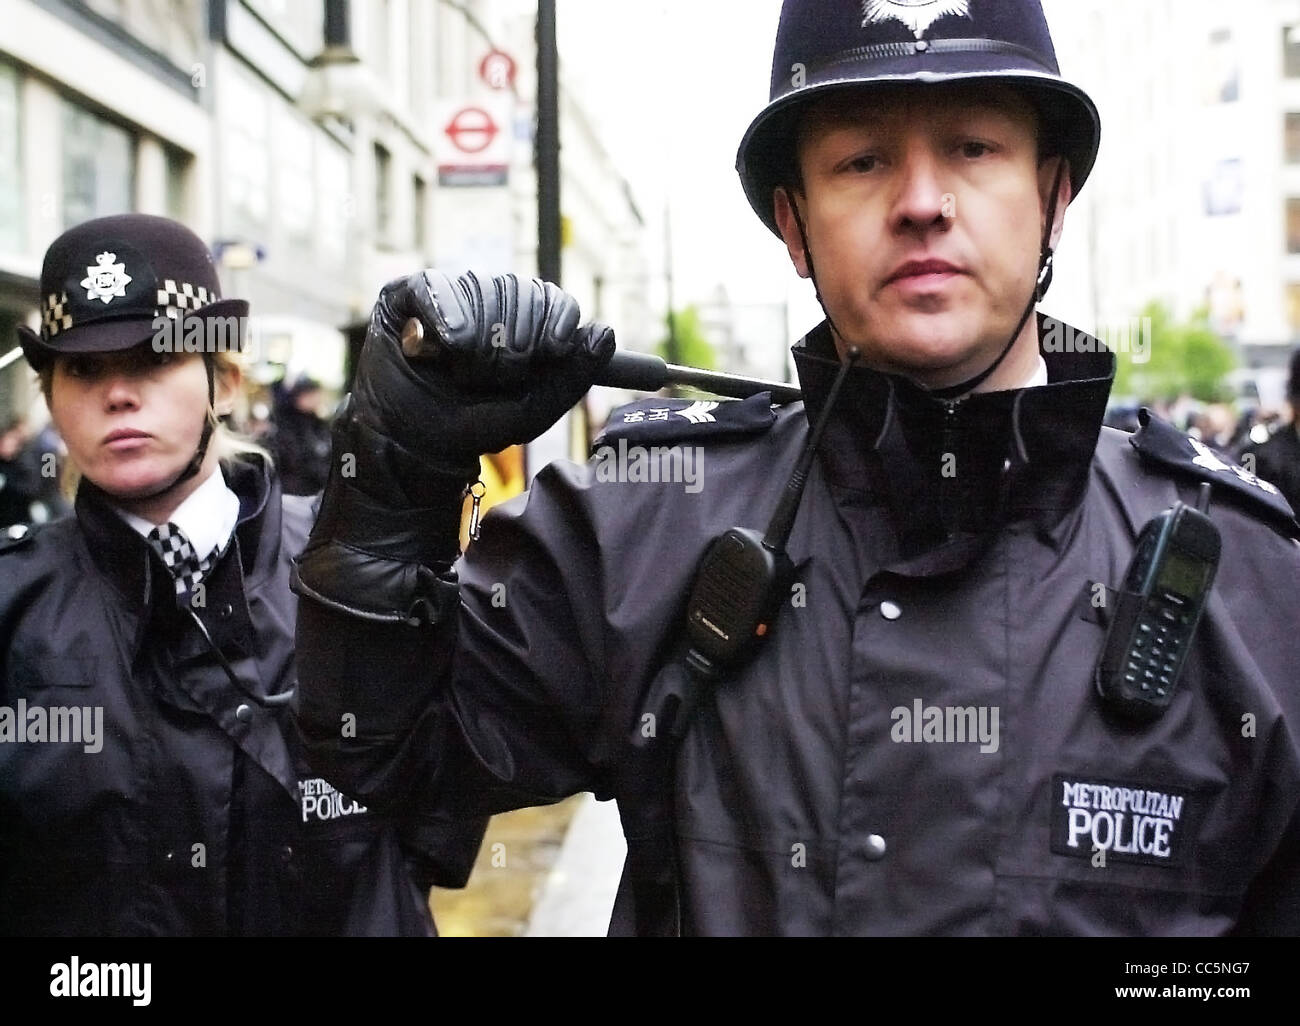 street policeman with baton raised editorial use only